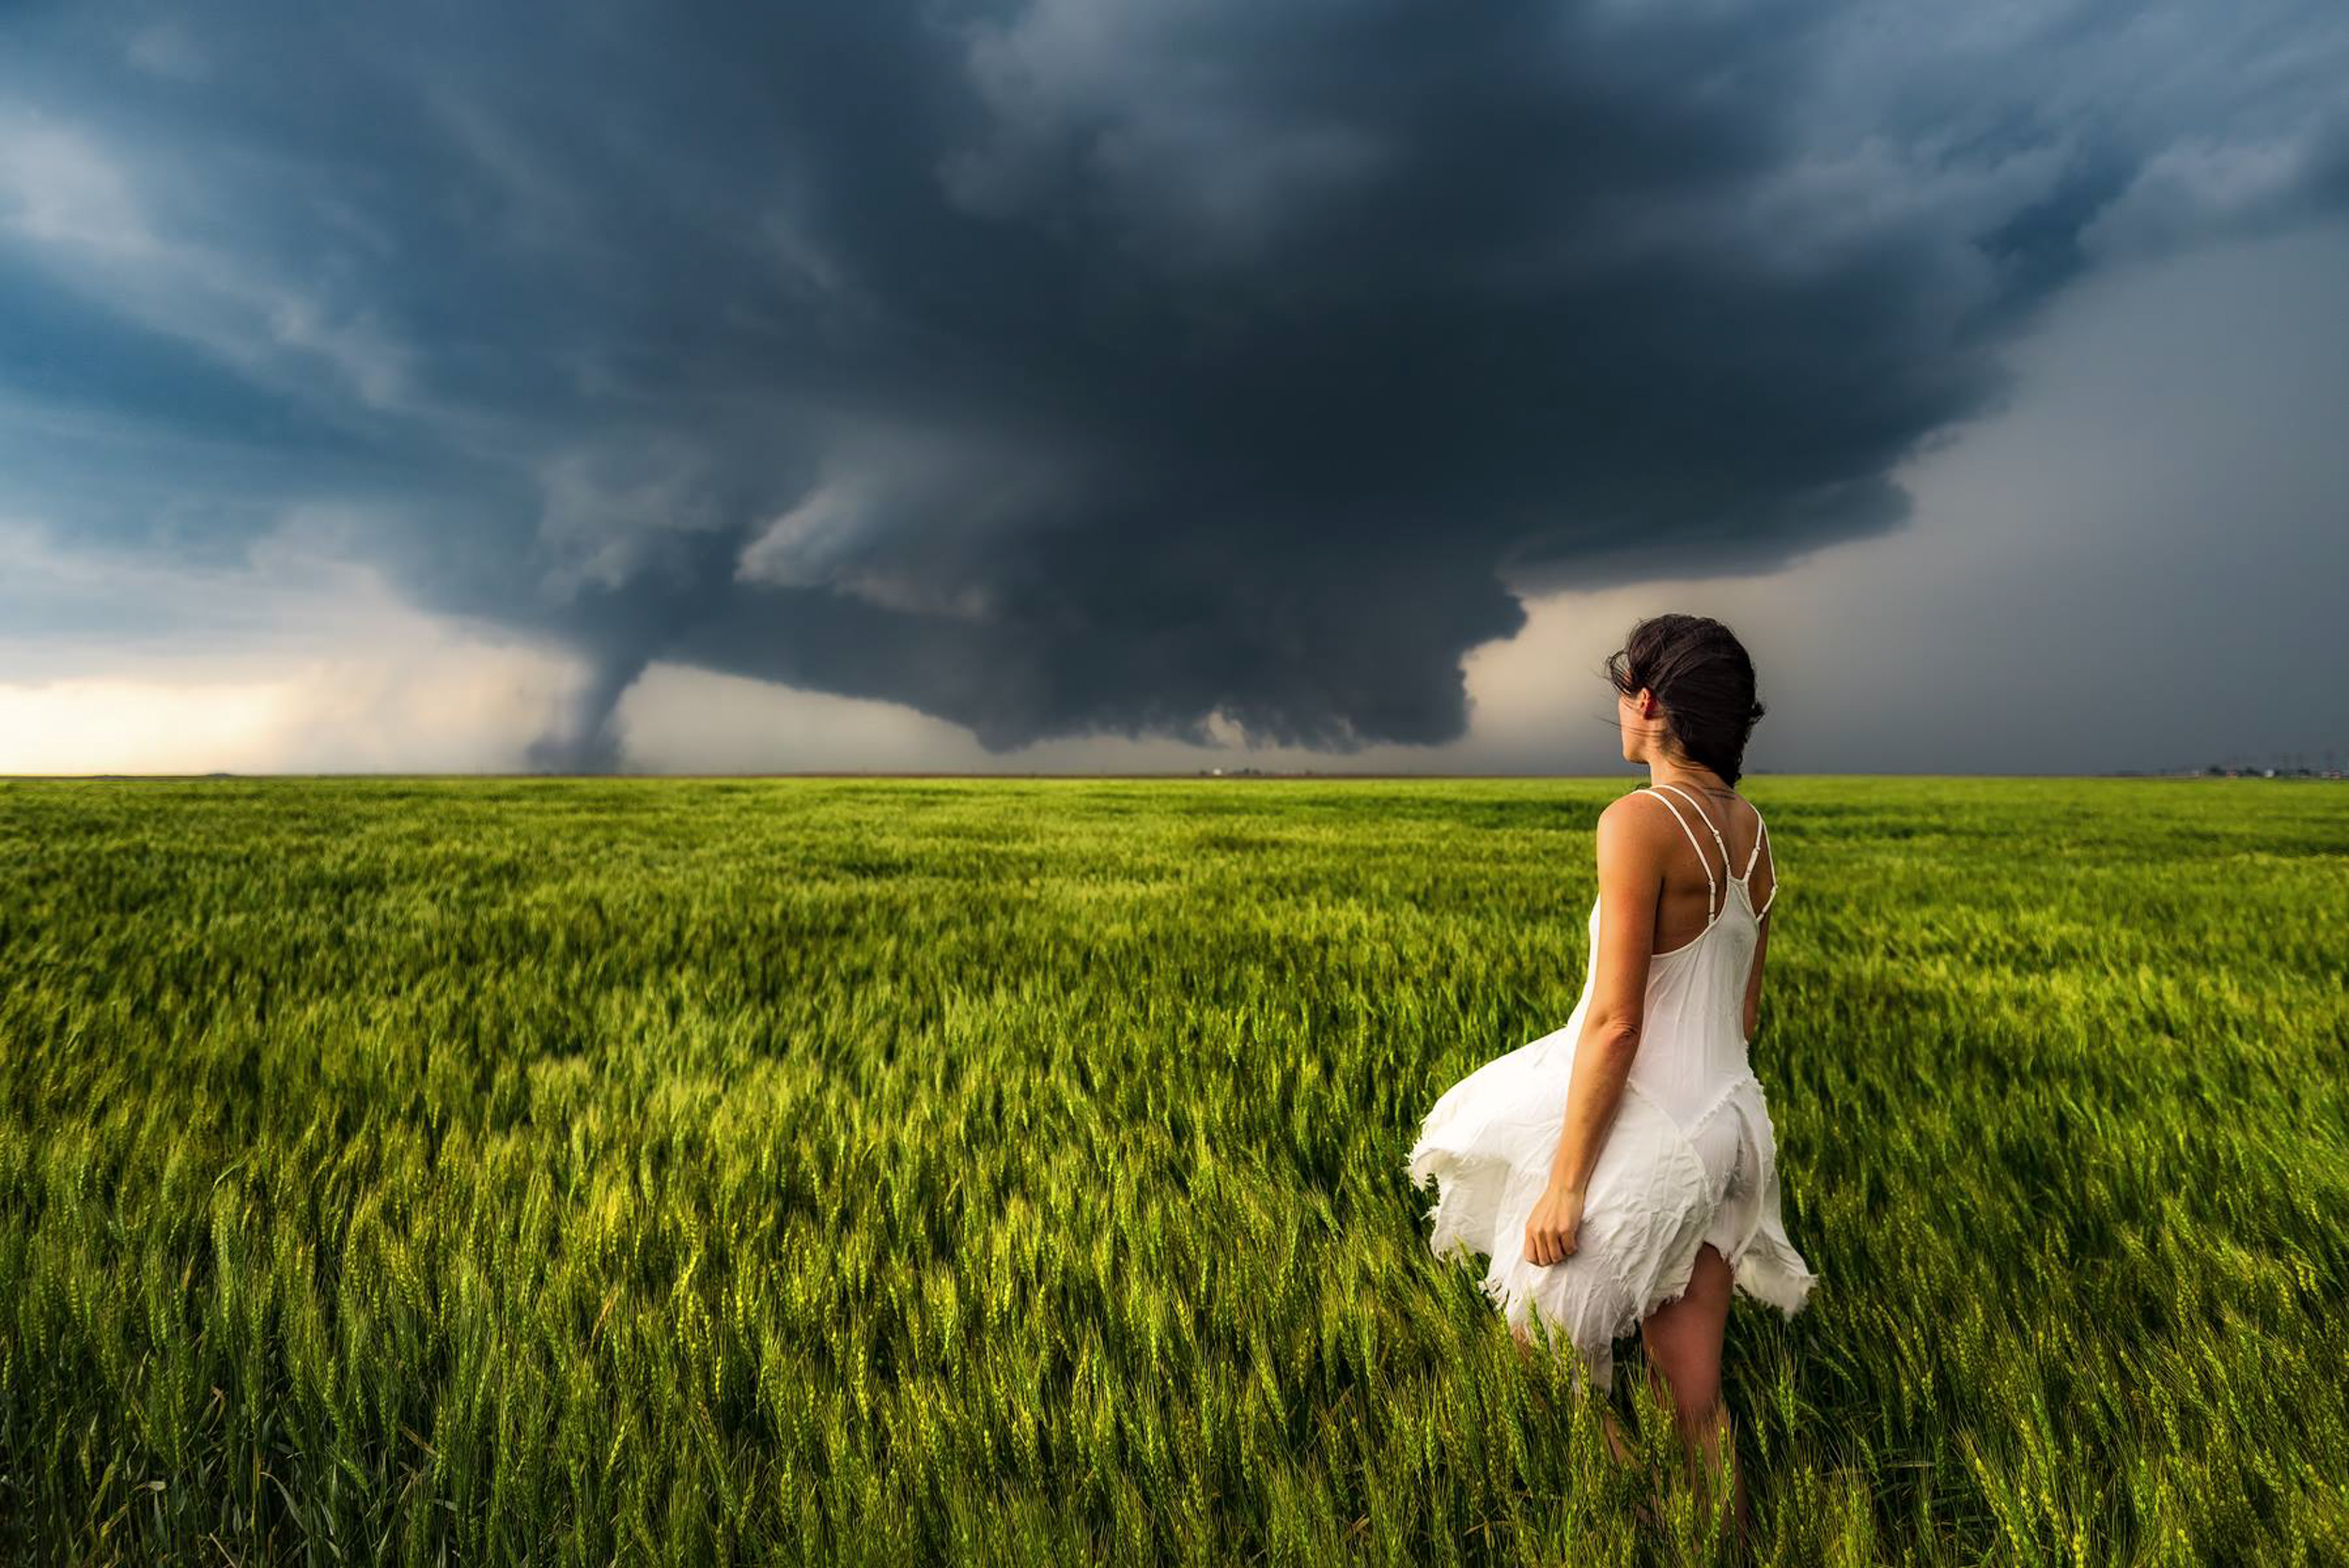 Greetings from Tornado Alley: storm chaser shares amazing images of extreme weather - Lonely Planet Travel News. Article by James Gabriel Martin. Photographs by Mike Mezeul II